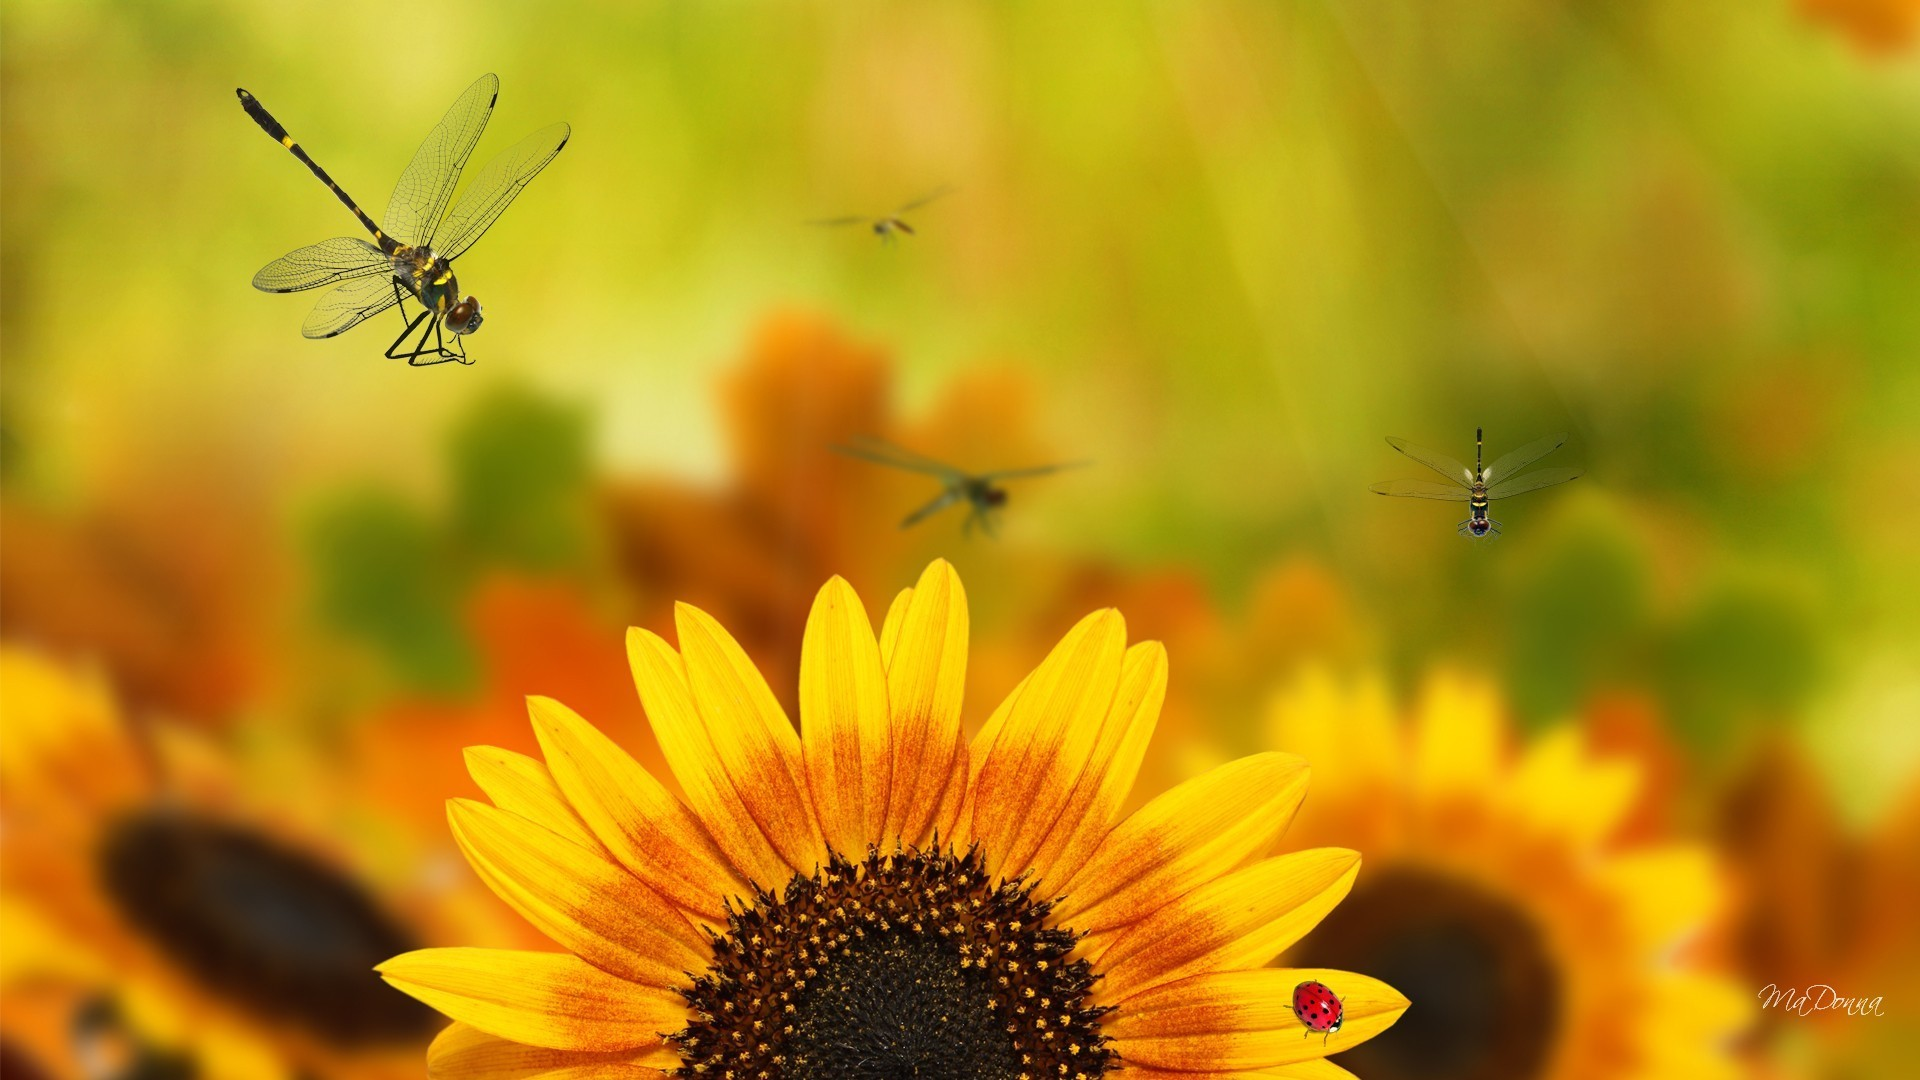 Res: 1920x1080, Dragonflies Tag - Yellow Bright Fall Fleurs Orange Dragonflies Green Gold  Autumn Funflower Sunflowers Dragonfly Flowers